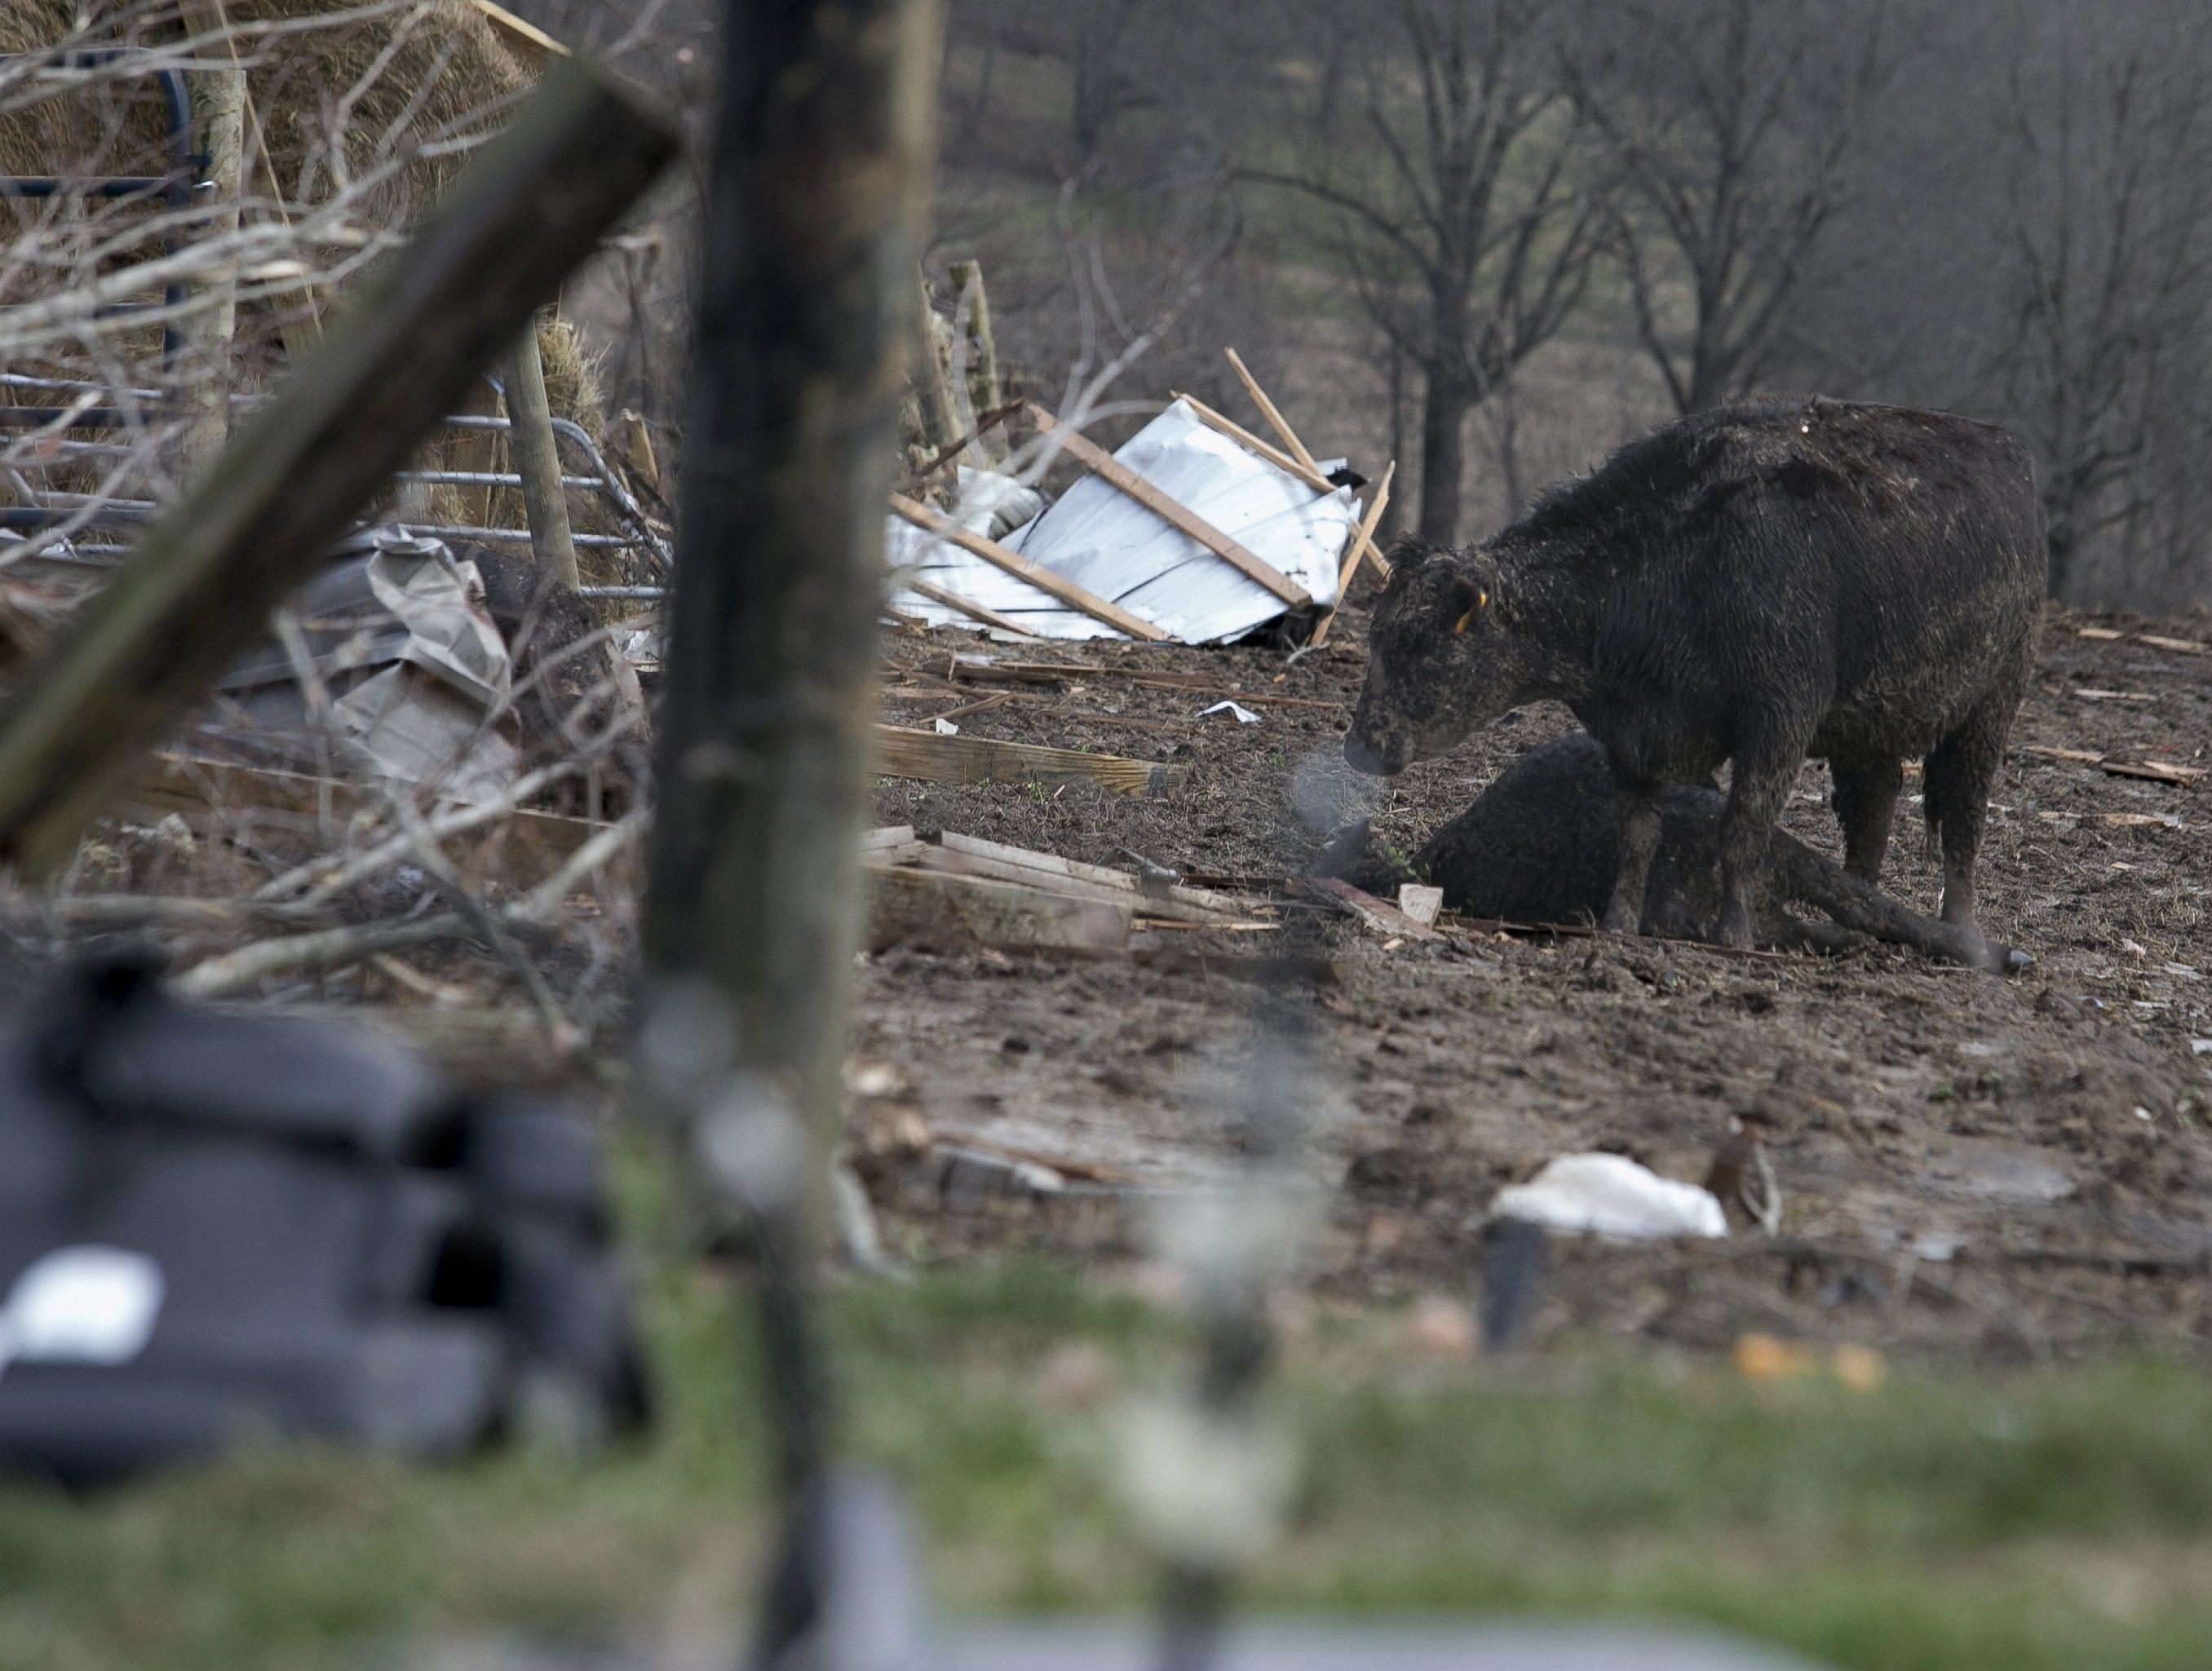 A mother cow mourns the death of her calf after a devastating tornado touched down on a farm in McCracken County, Ky., on Thursday, March 14, 2019.